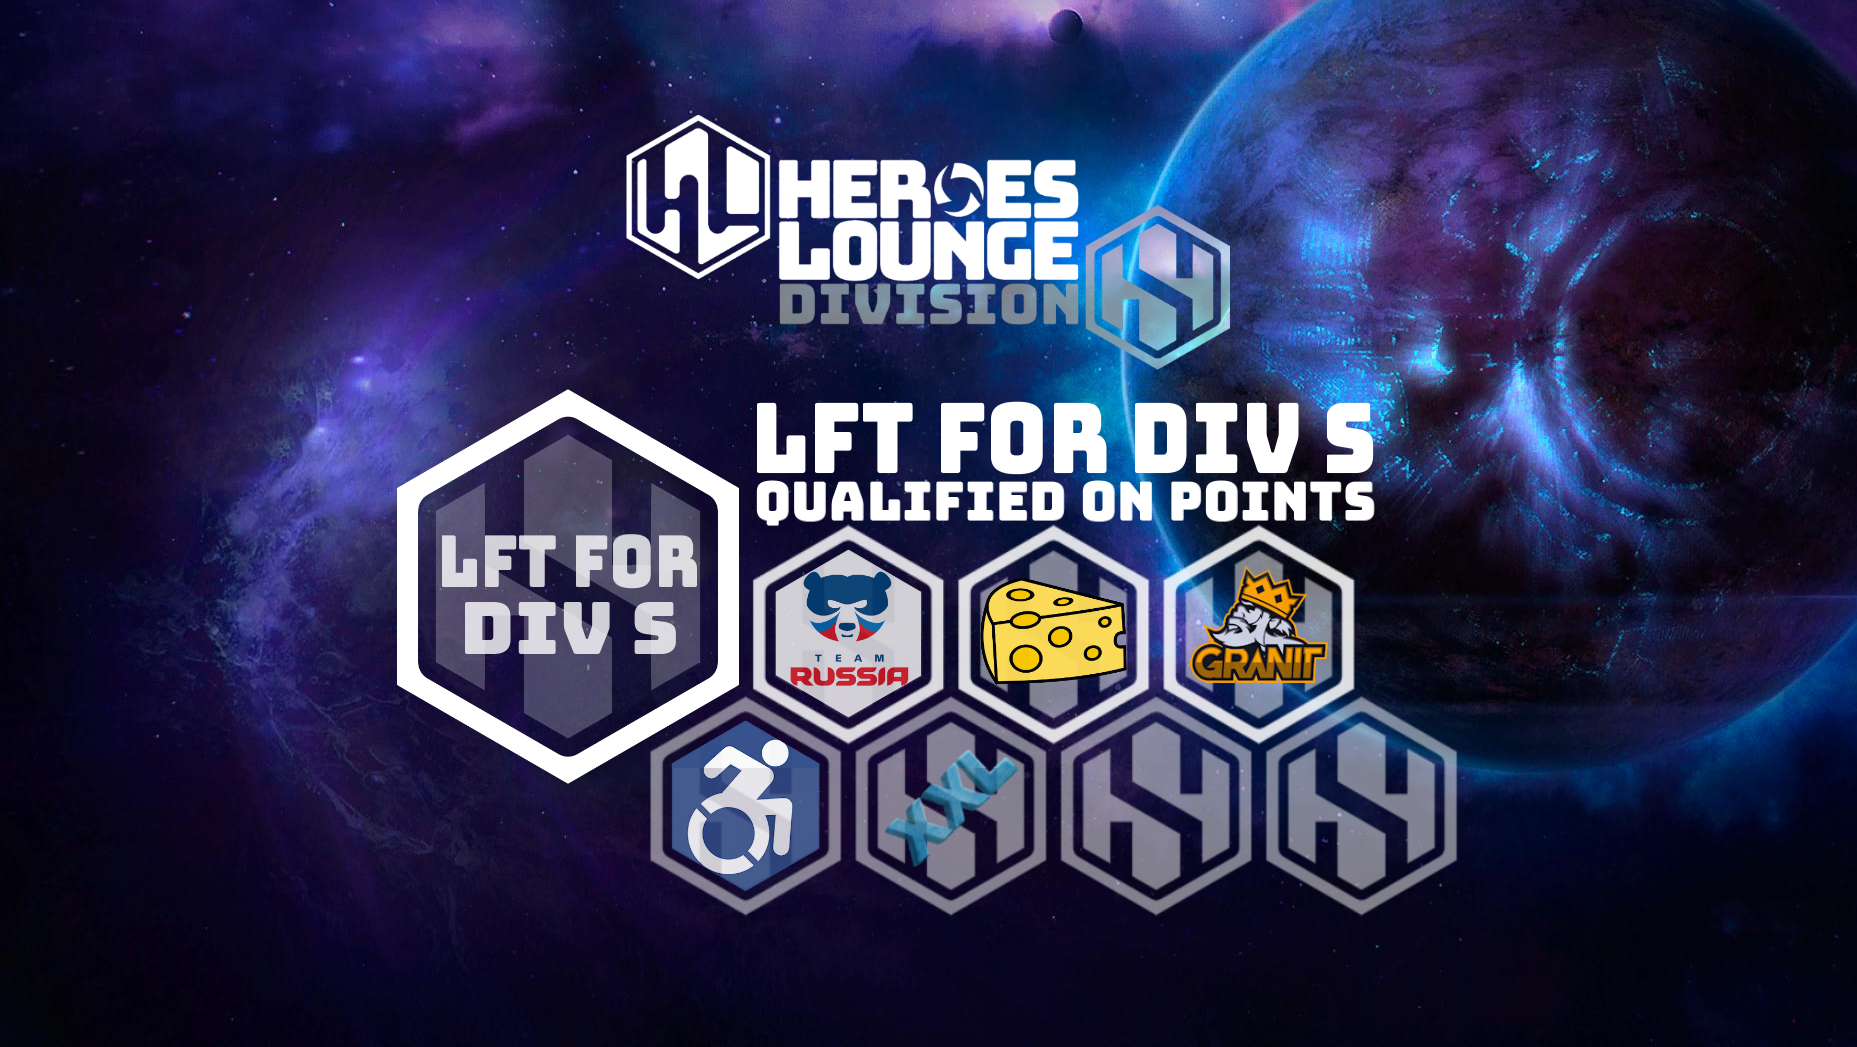 EU Division S - Last teams to qualify - Blog Post | Heroes